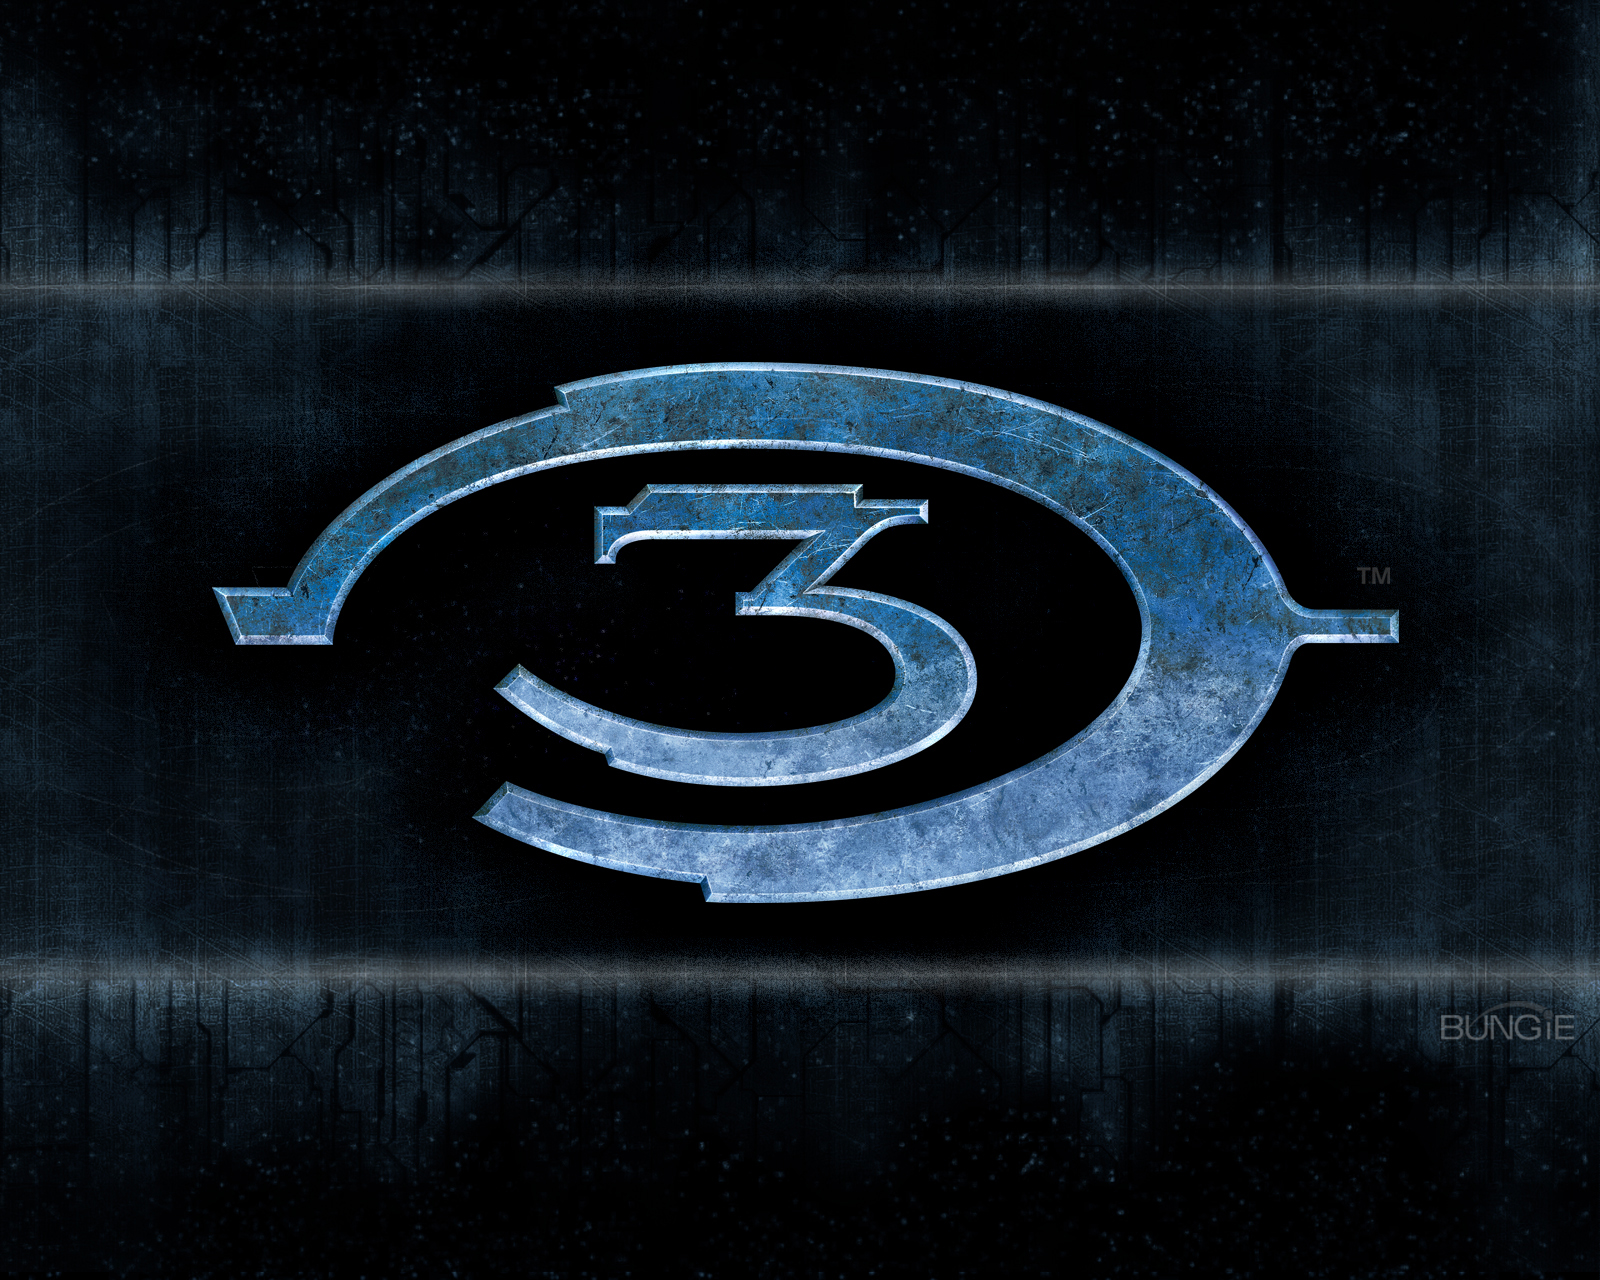 image - halo-3-wallpaper-logo | halo nation | fandom powered